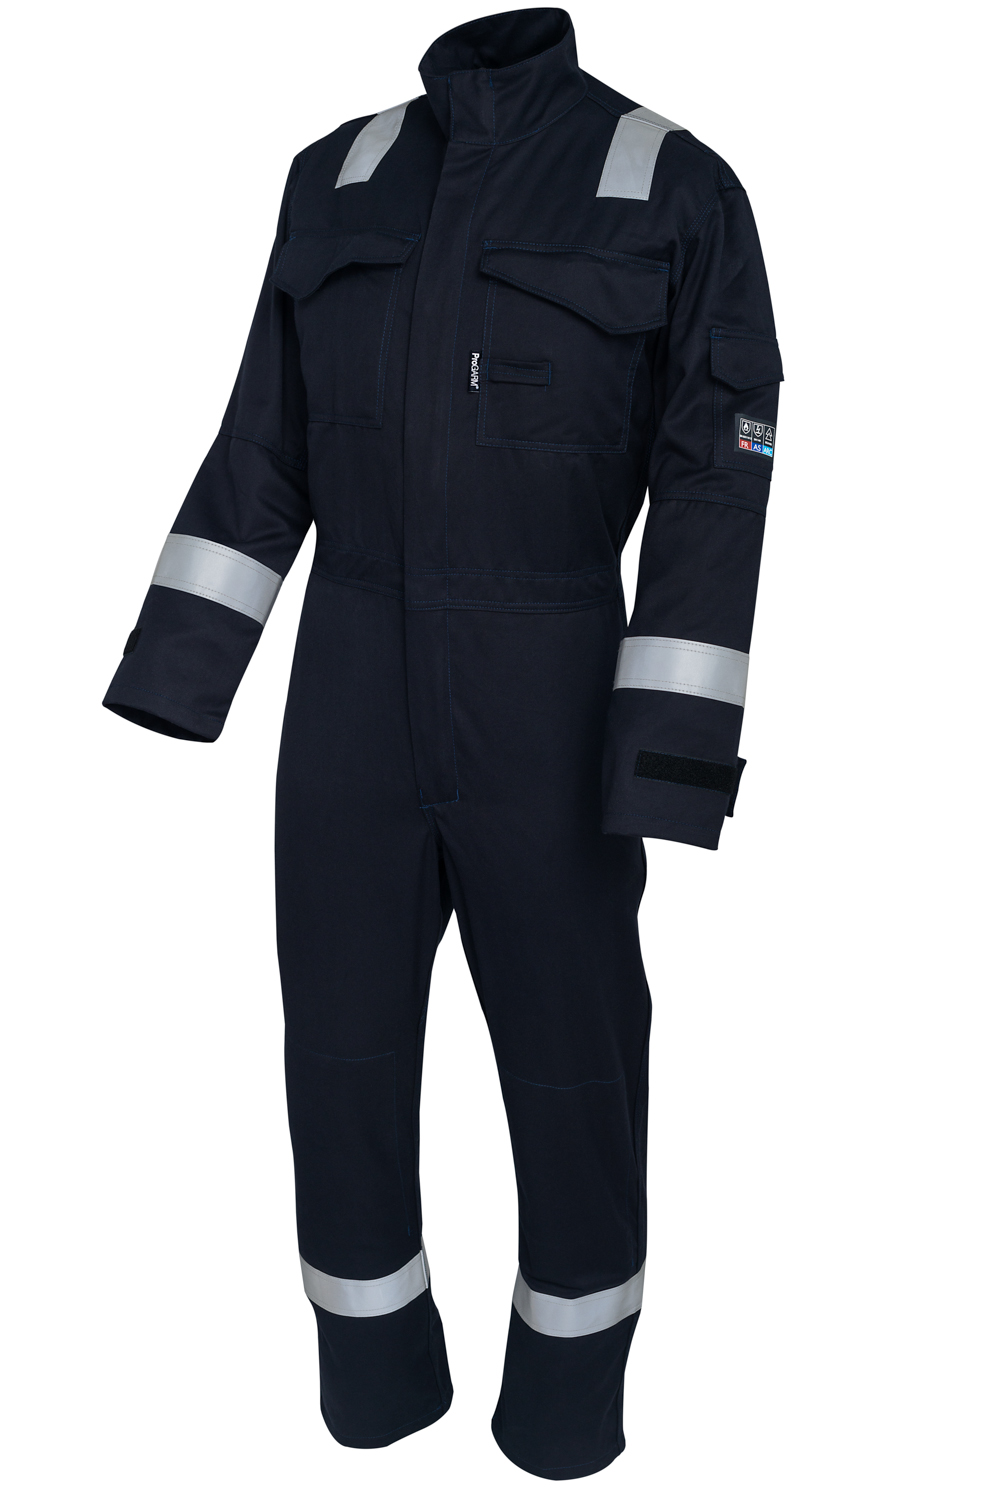 Featured Product | the best selling coverall featuring reflective tape and the lightweight ProGARM VXS+ Flame Resistant fabric whilst ensuring outstanding Arc Flash protective properties. CE Certified for Arc Flash protection to Class 1 and 9.5 cal/cm².